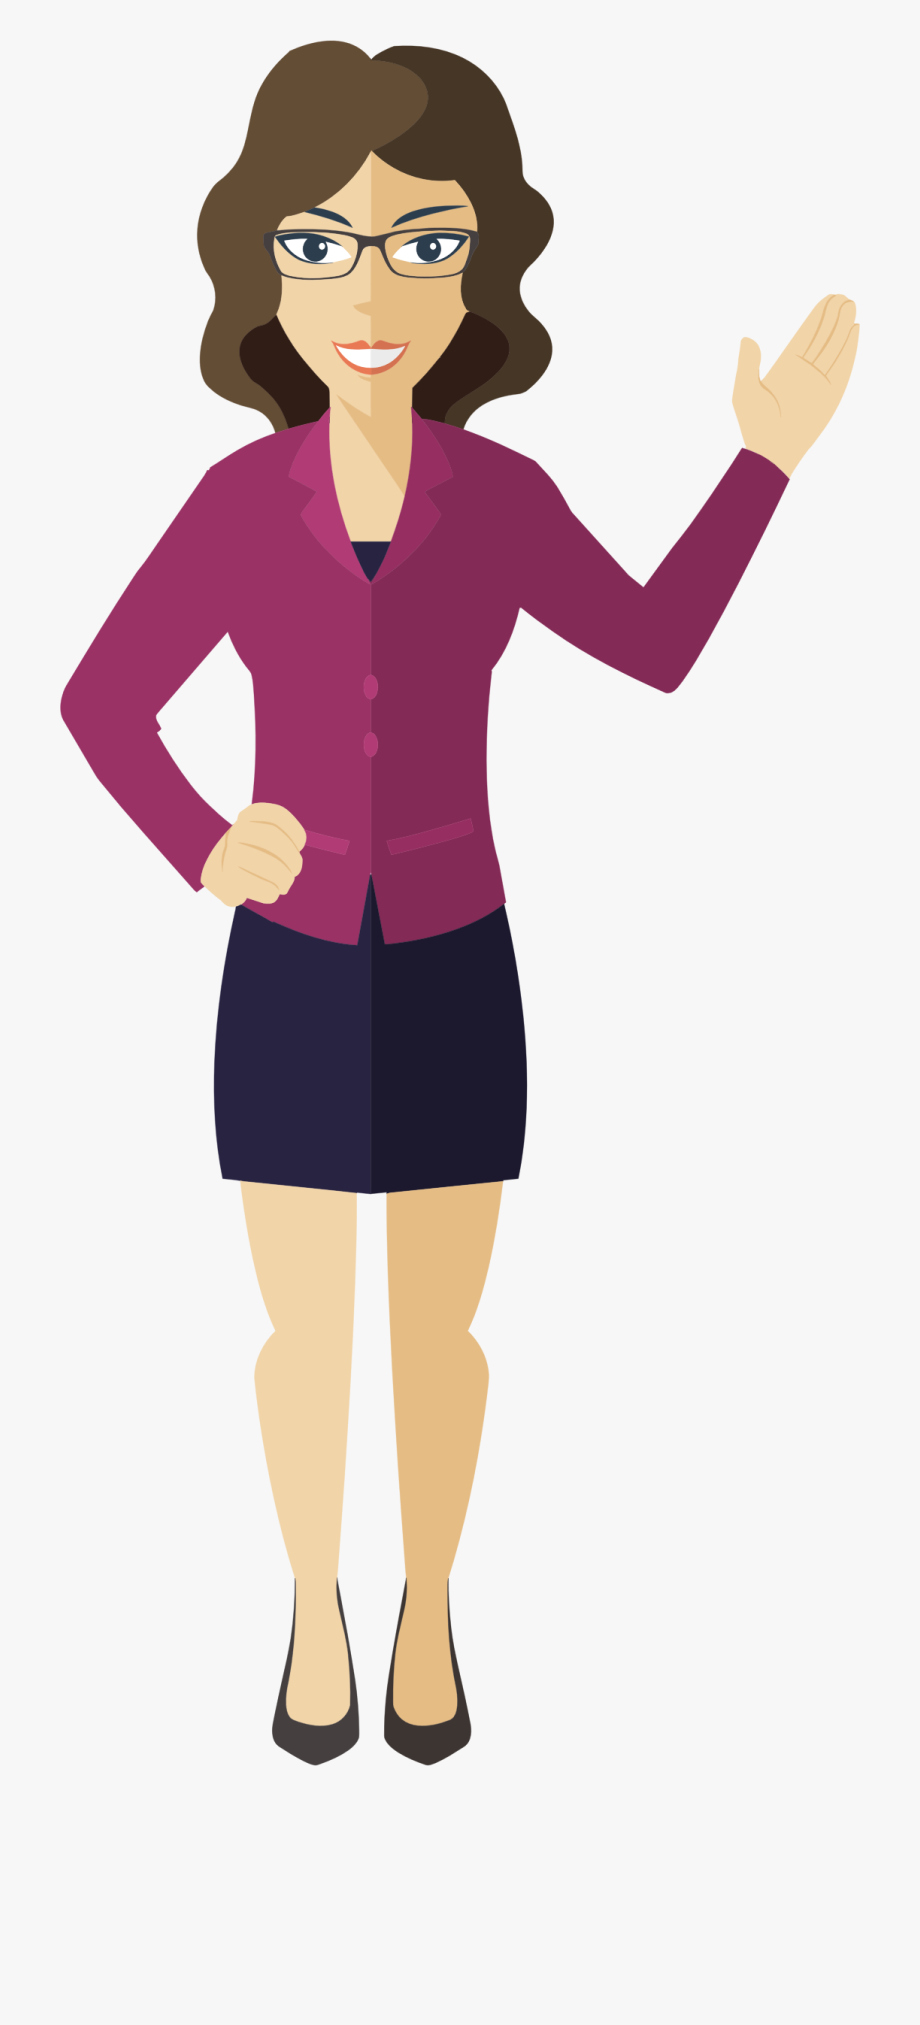 Clipart girl person, Clipart girl person Transparent FREE.